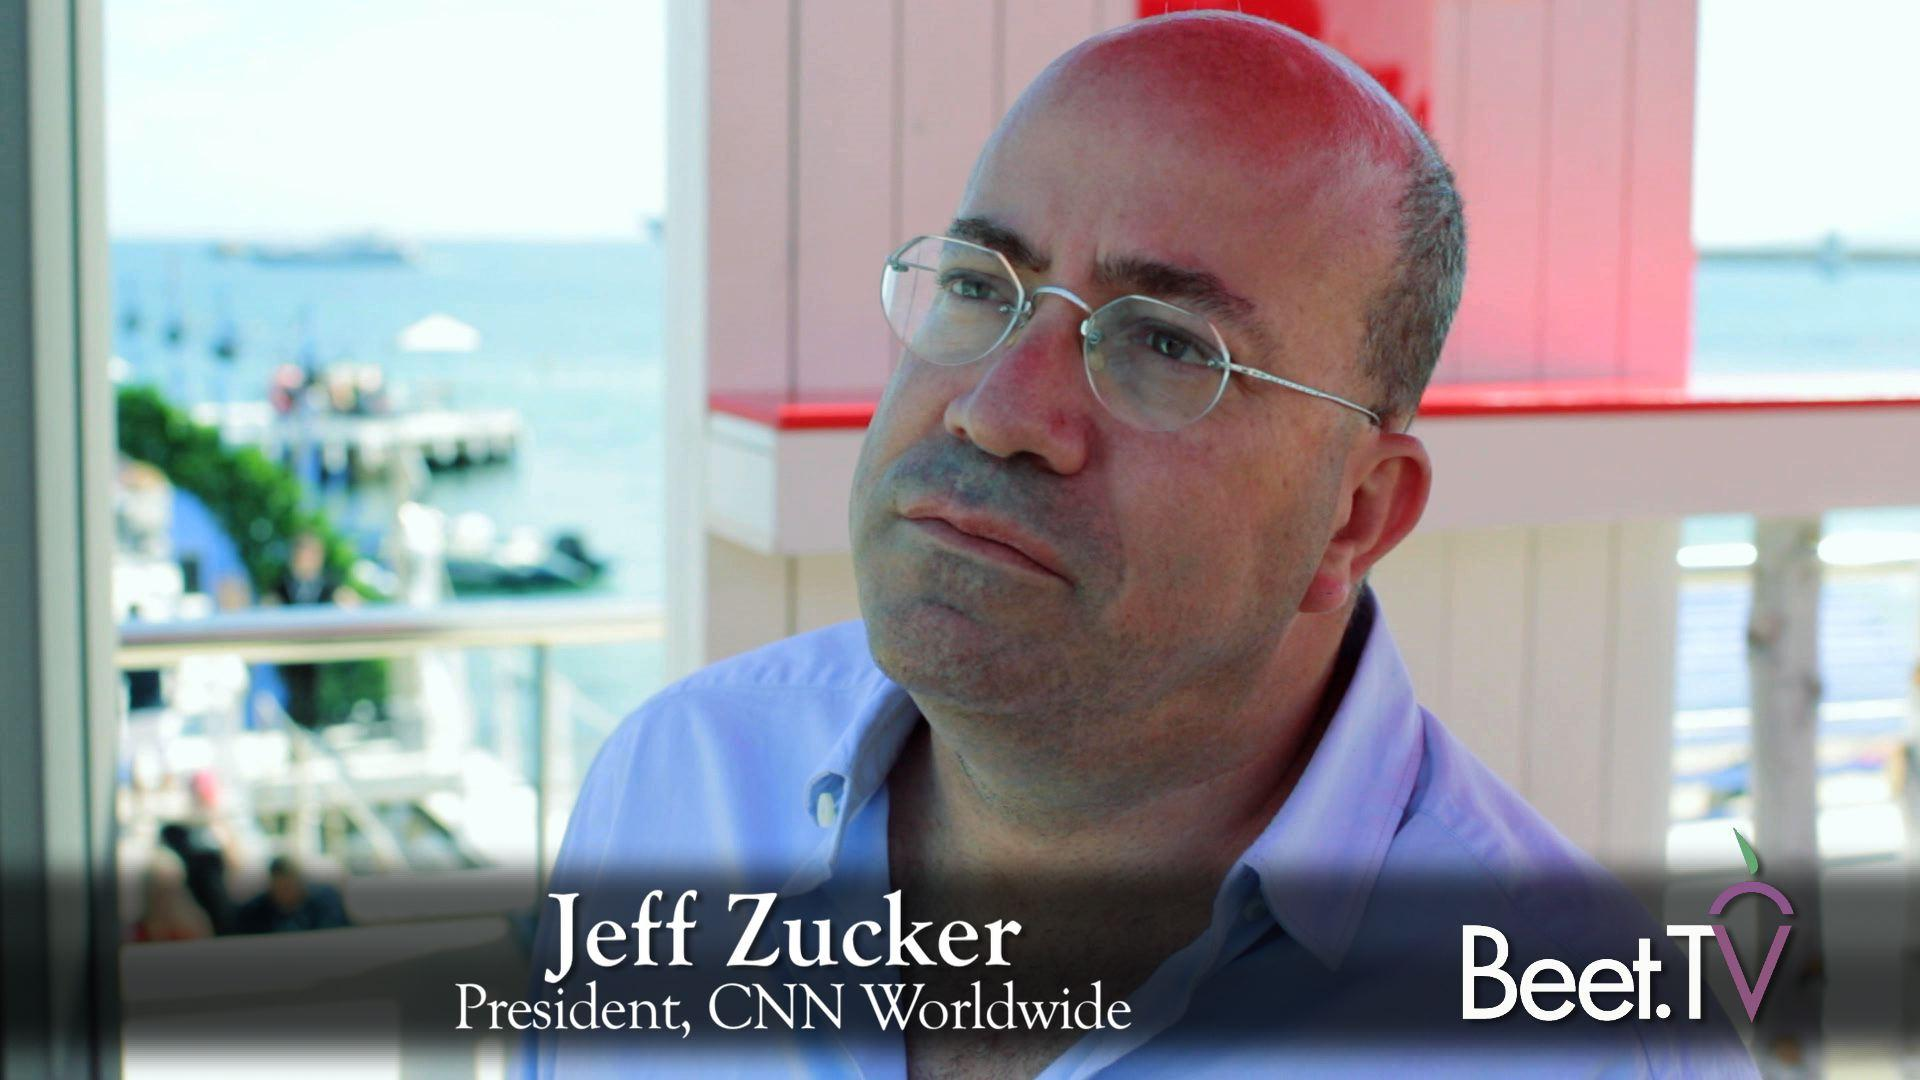 (VIDEO) CNN Chief Zucker: With Original Programming, Not Just A News Network